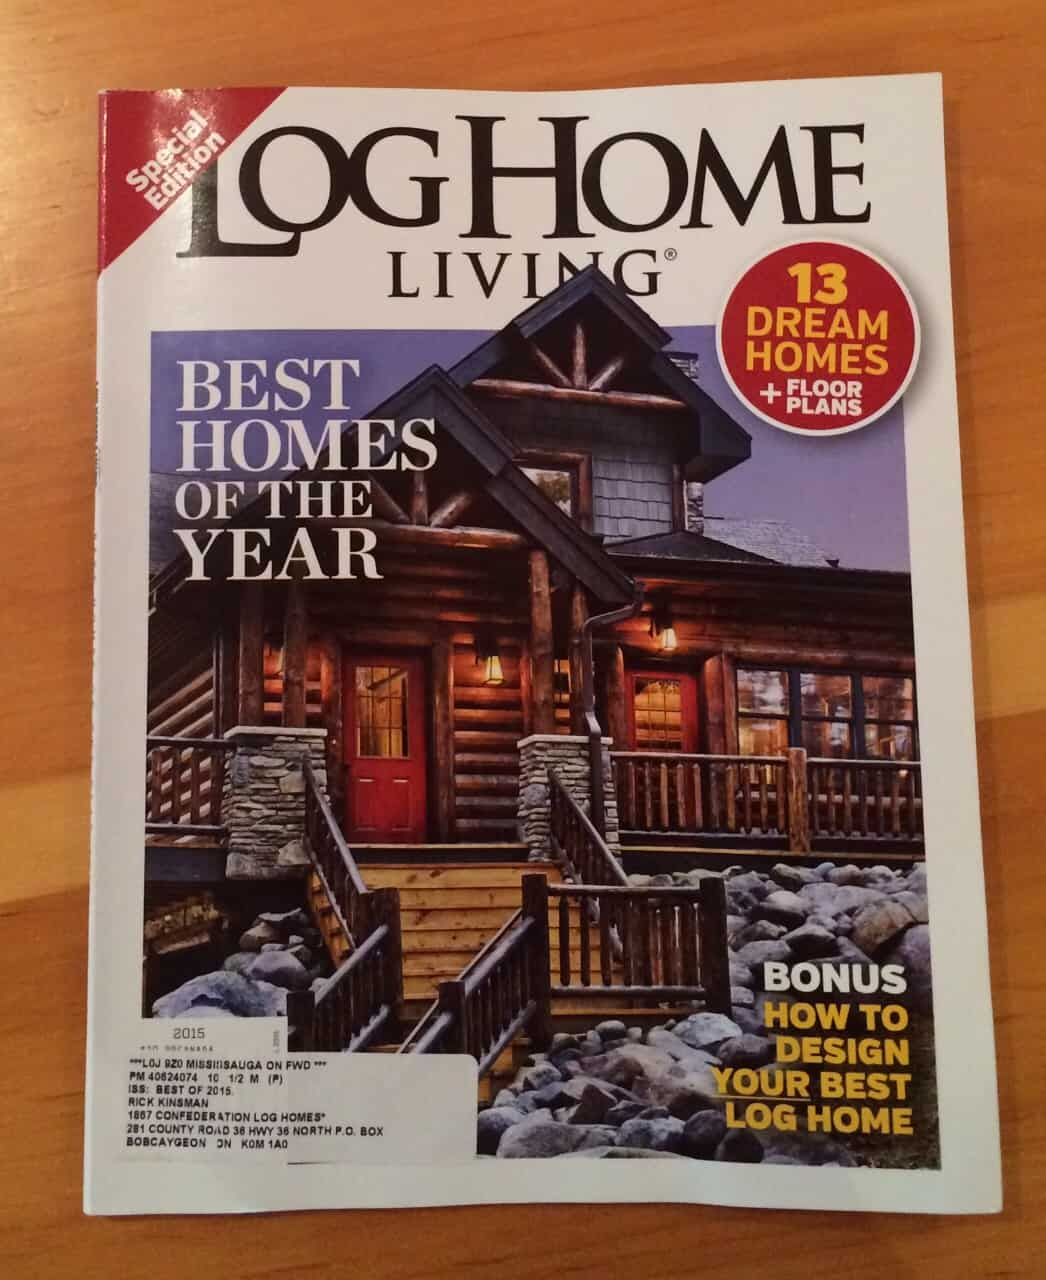 log home living 2